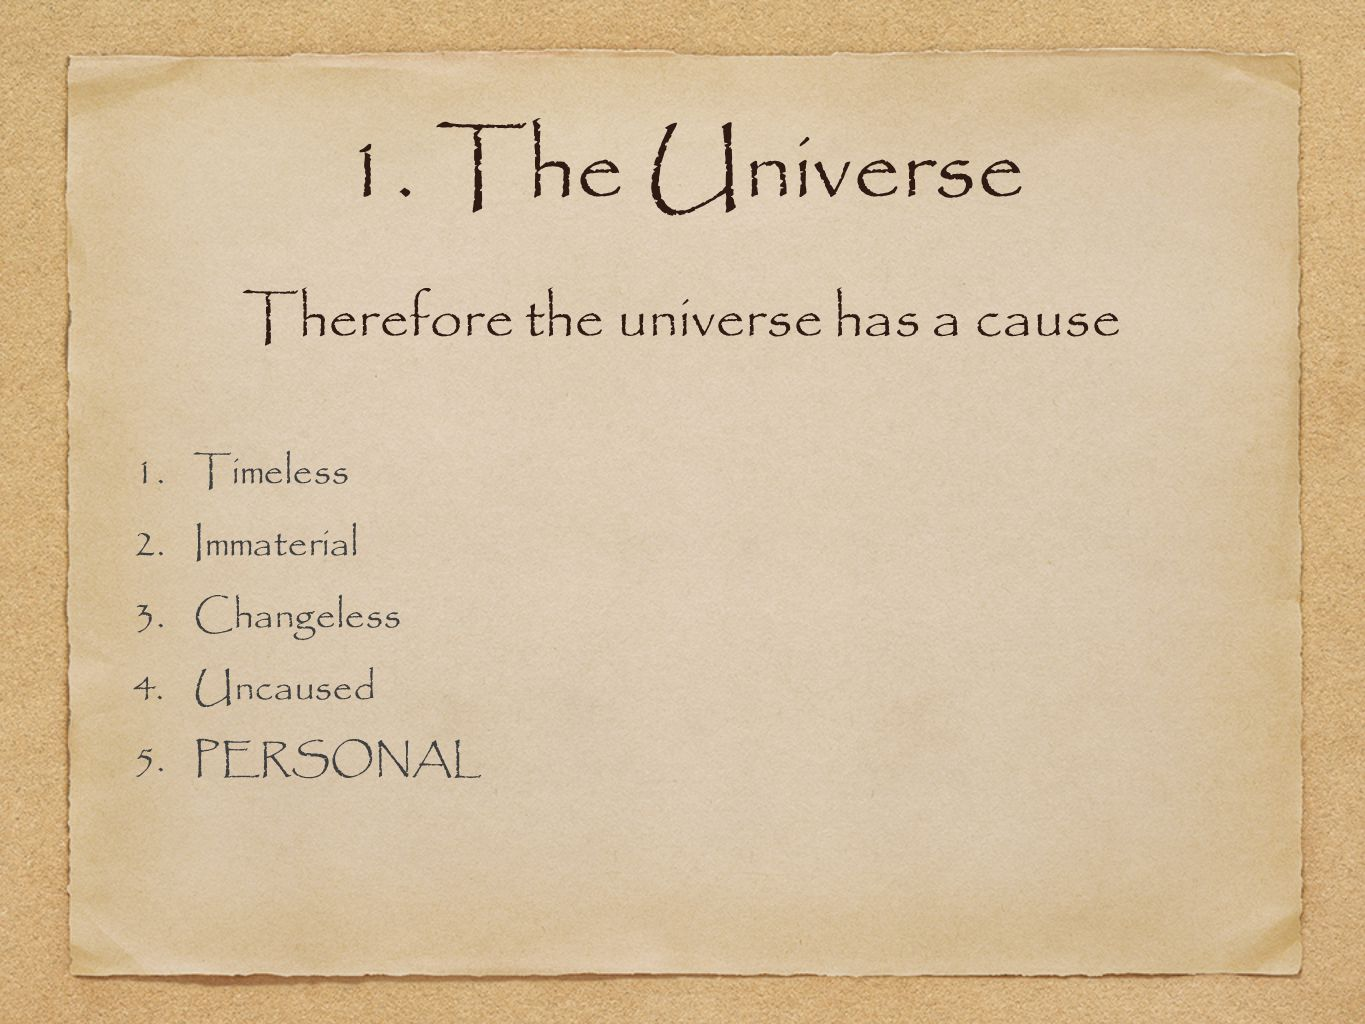 1. The Universe 1.Timeless 2.Immaterial 3.Changeless 4.Uncaused 5.PERSONAL Therefore the universe has a cause